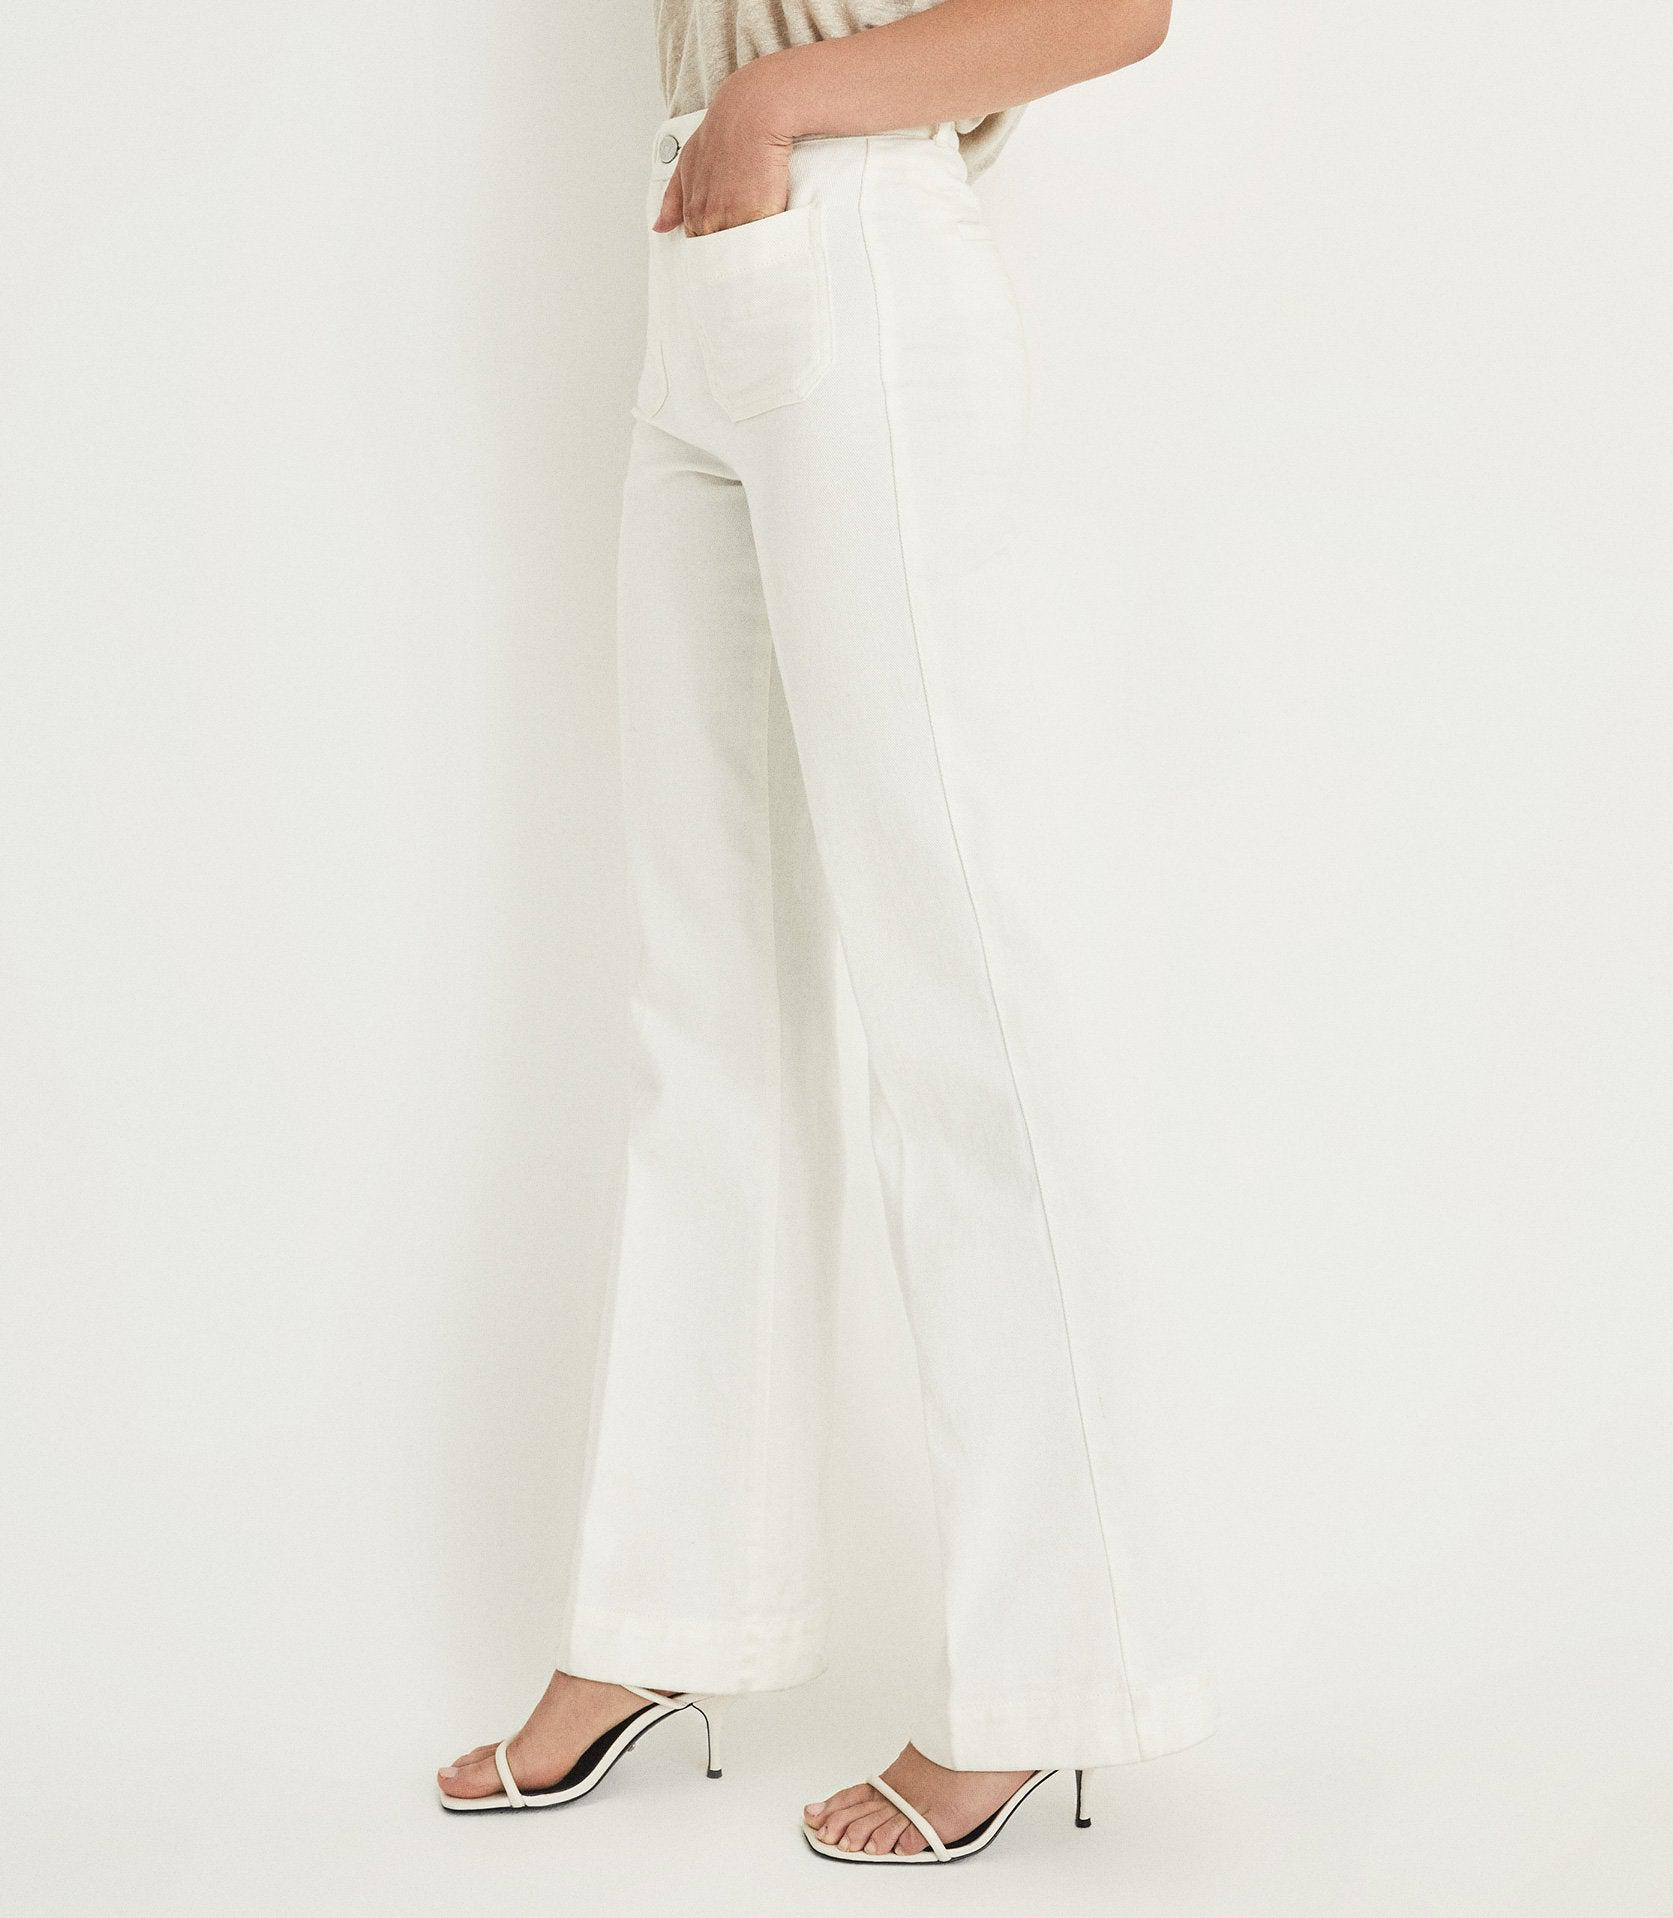 ISA - HIGH RISE FLARED JEANS 5